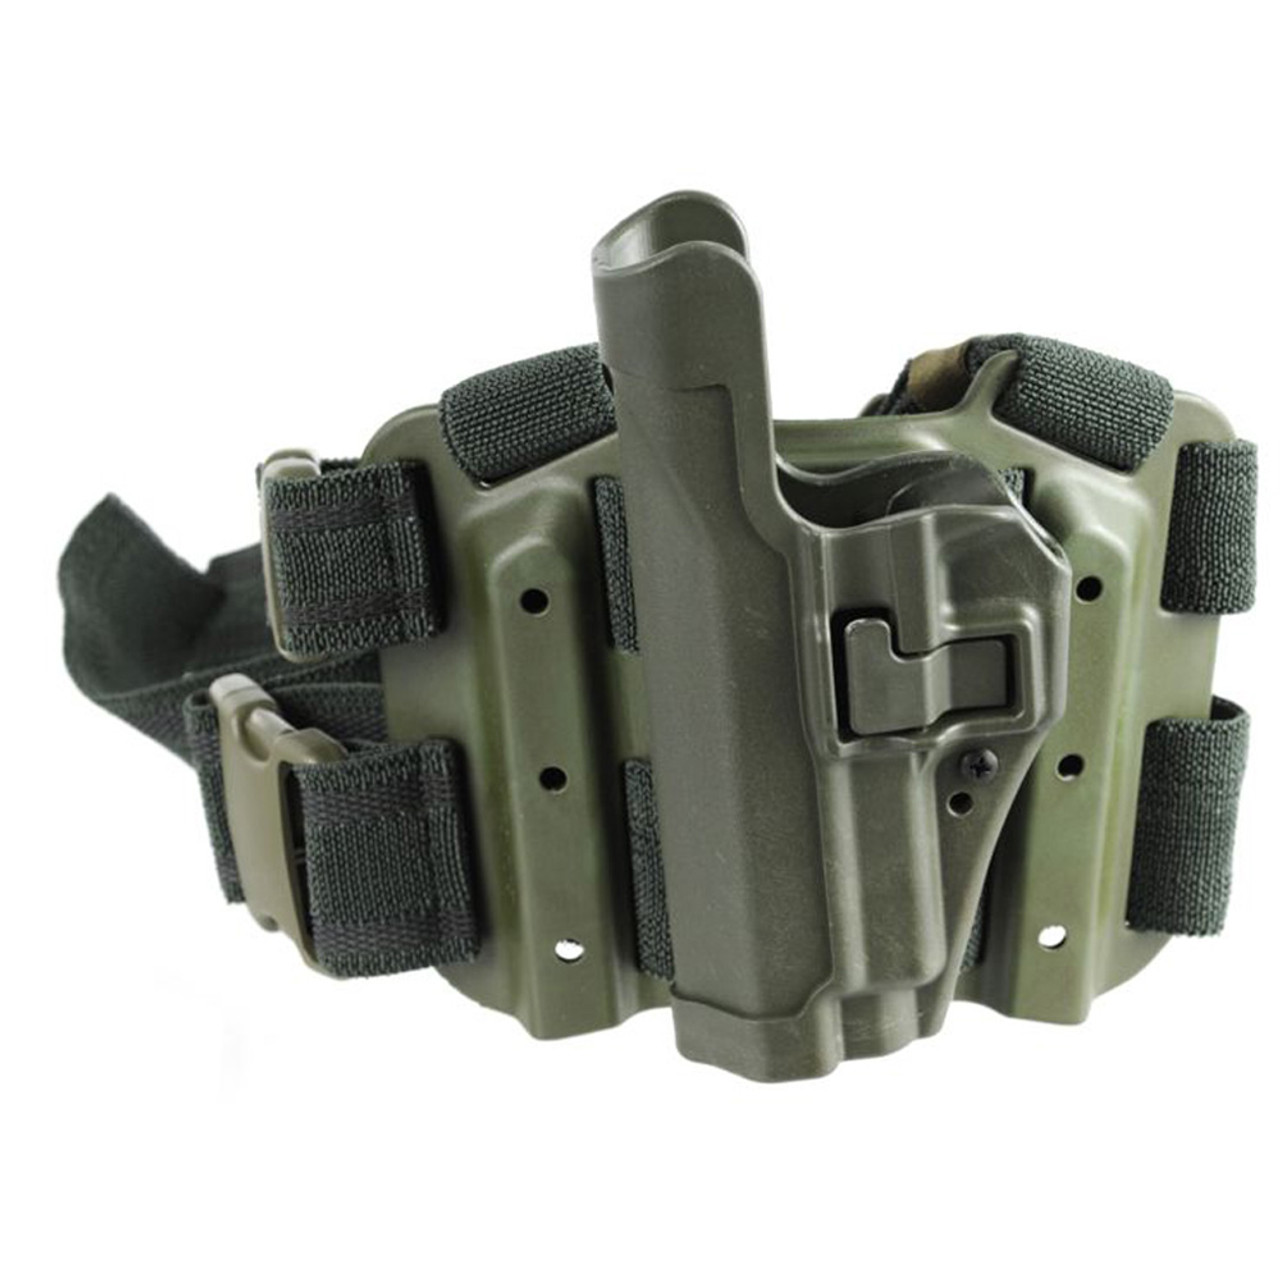 Blackhawk 4305 SERPA® Level 2 Tactical Holster, available in Black, Coyote Tan, Foliage Green, and Olive Drab